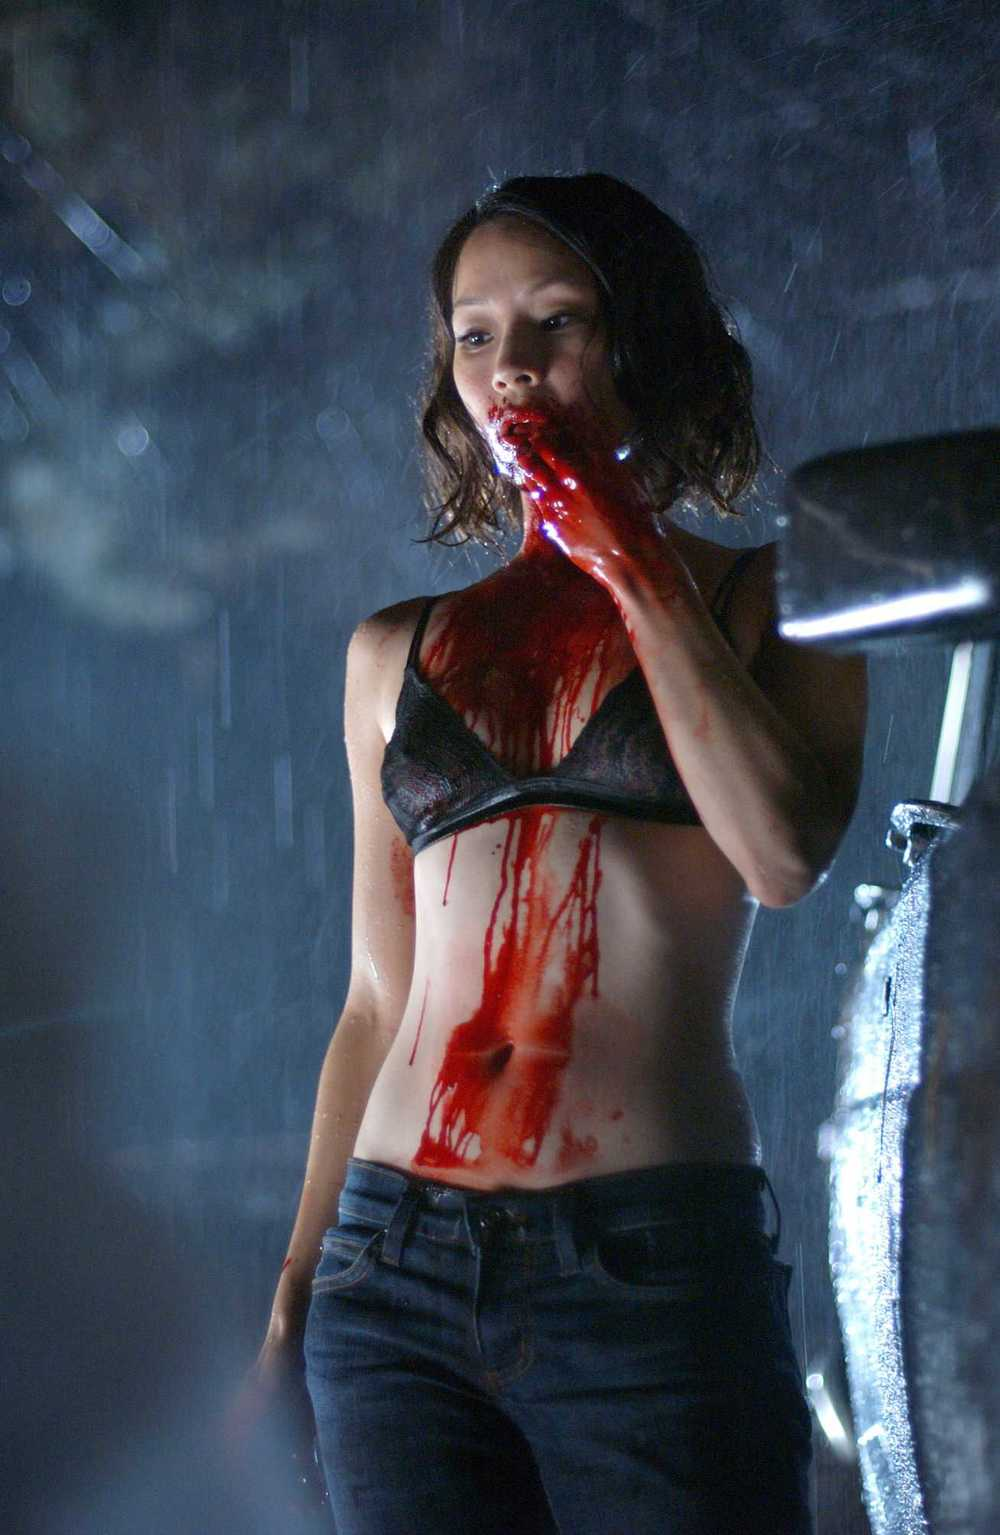 lucy_liu_in_rise_blood_hunter.jpg